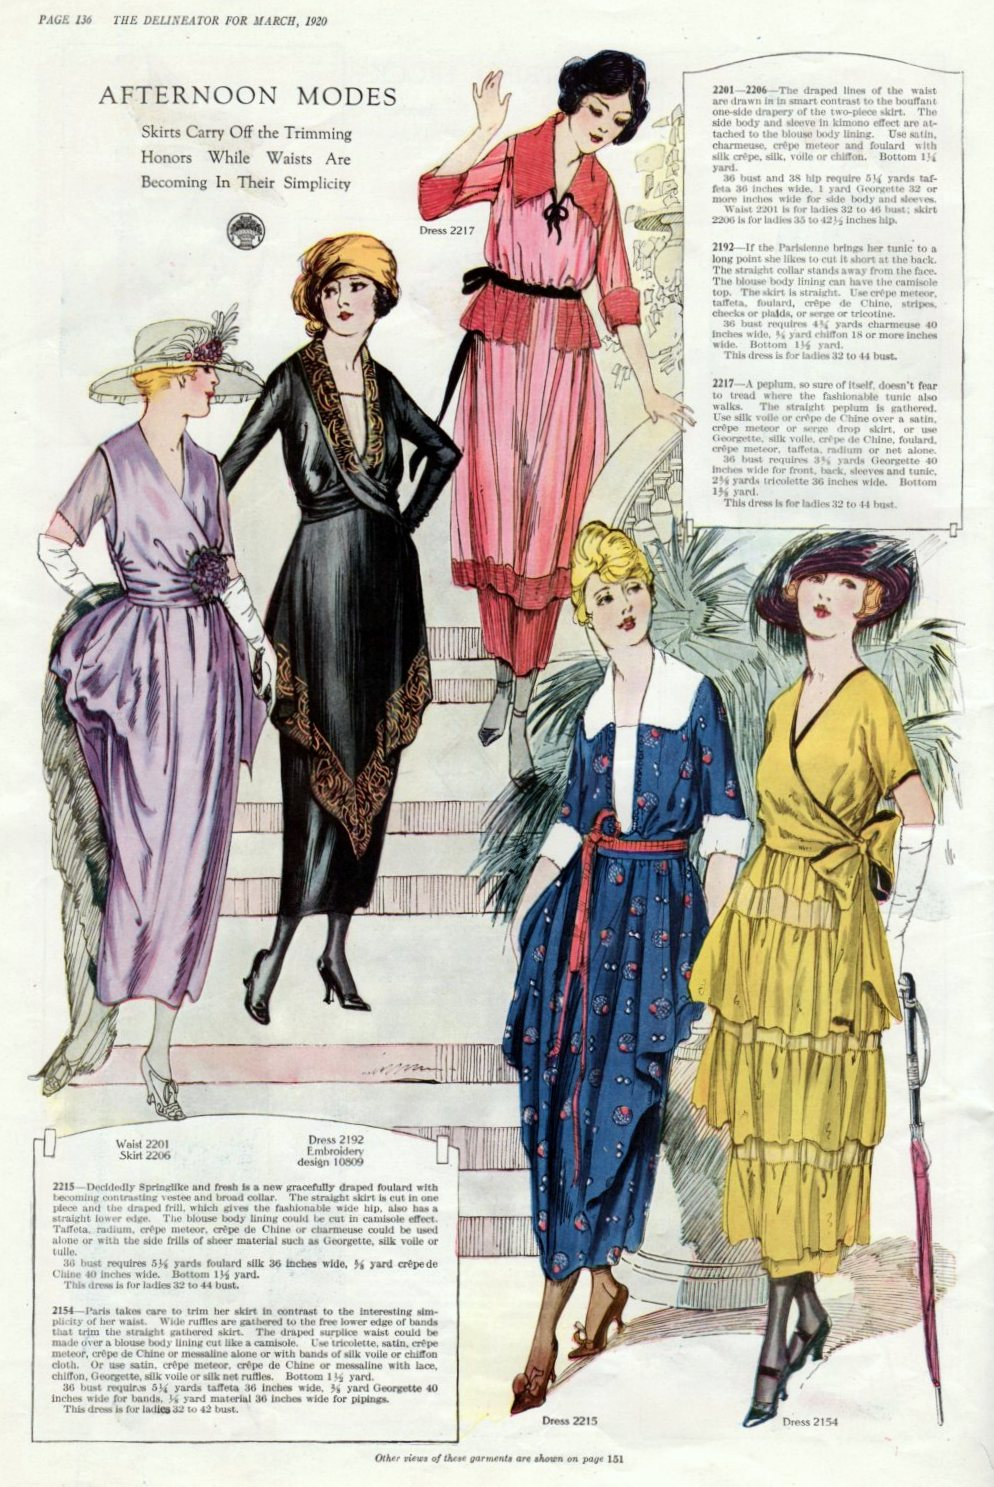 1920 Fashions From Delineator Magazine